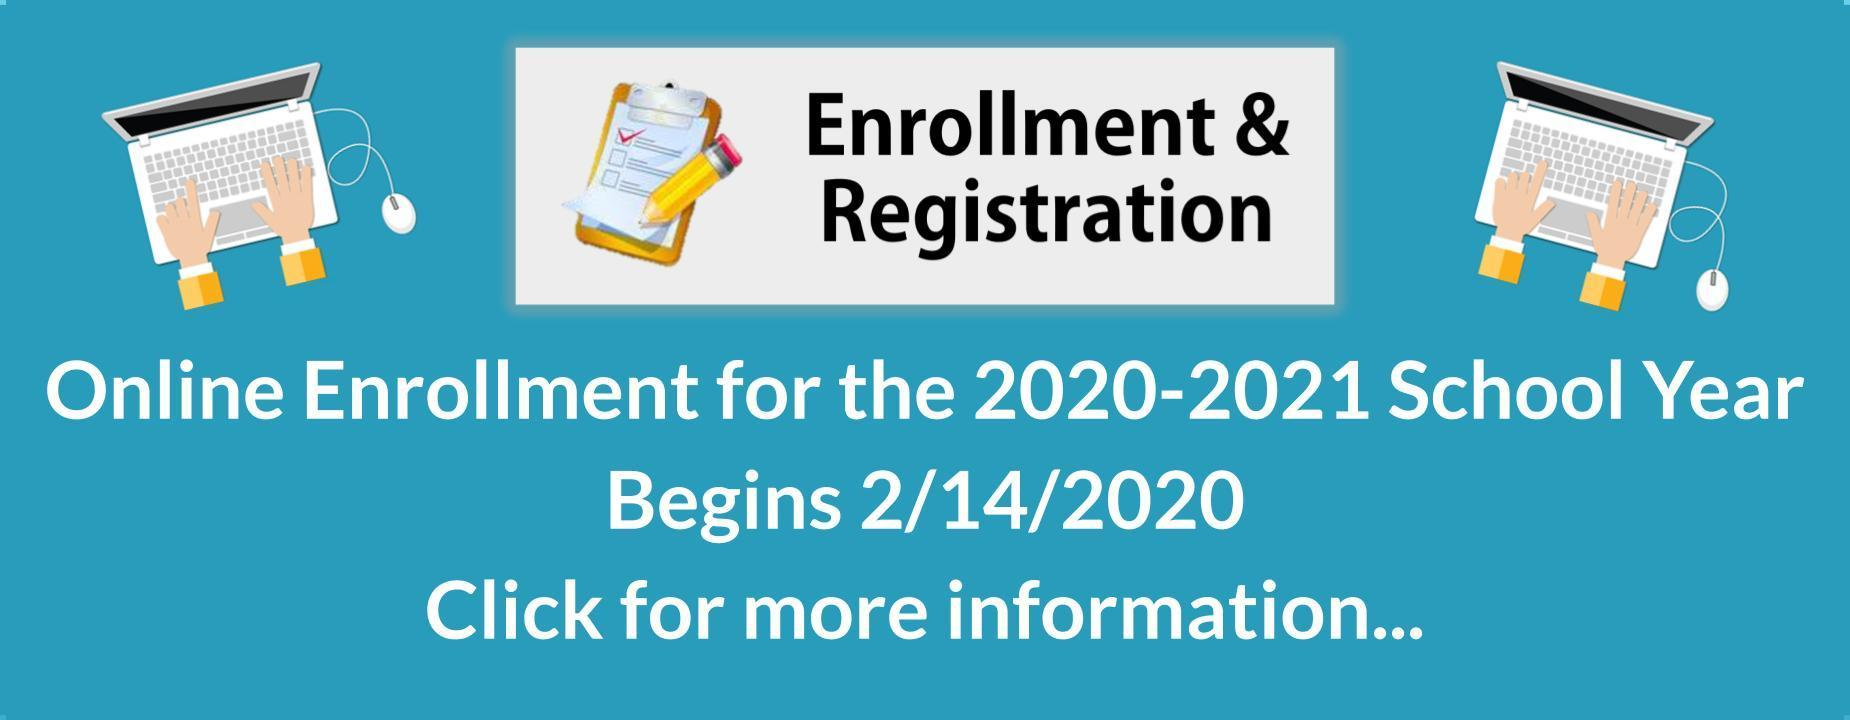 Enrollment Registration Information